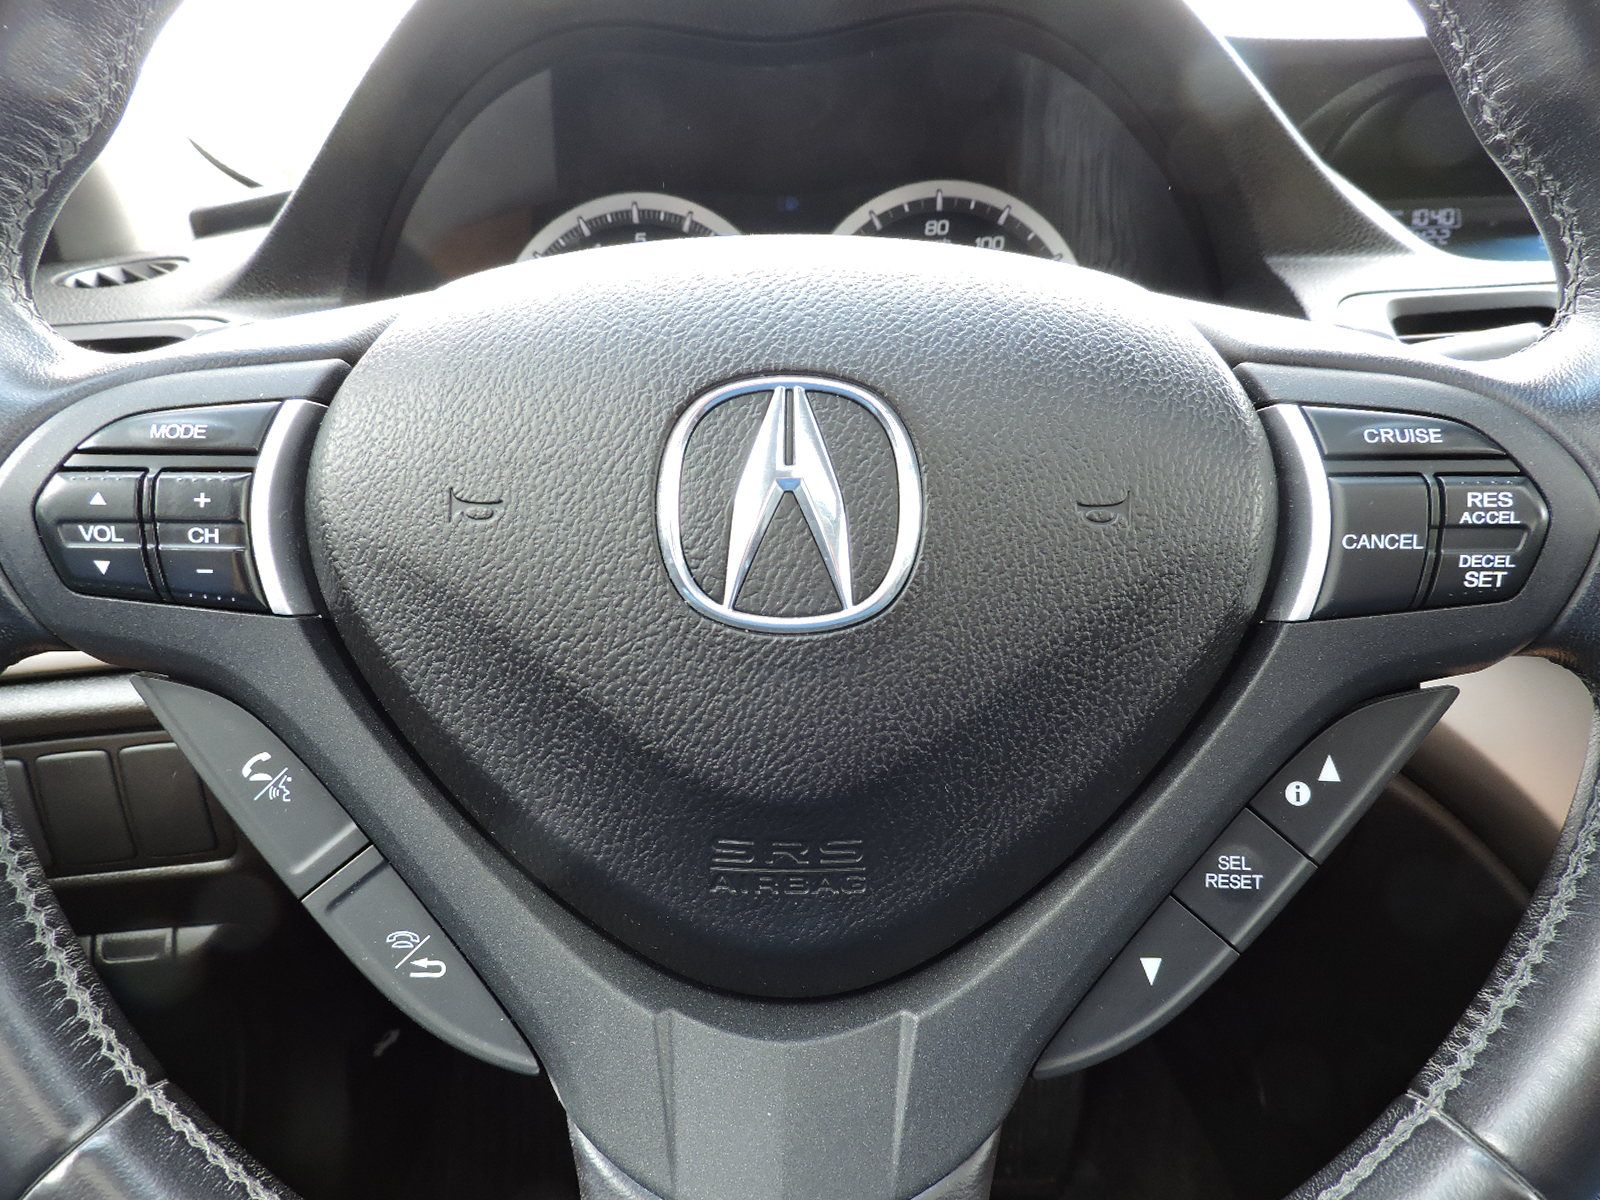 Used 2010 Acura TSX 2 0T at Auto House USA Saugus